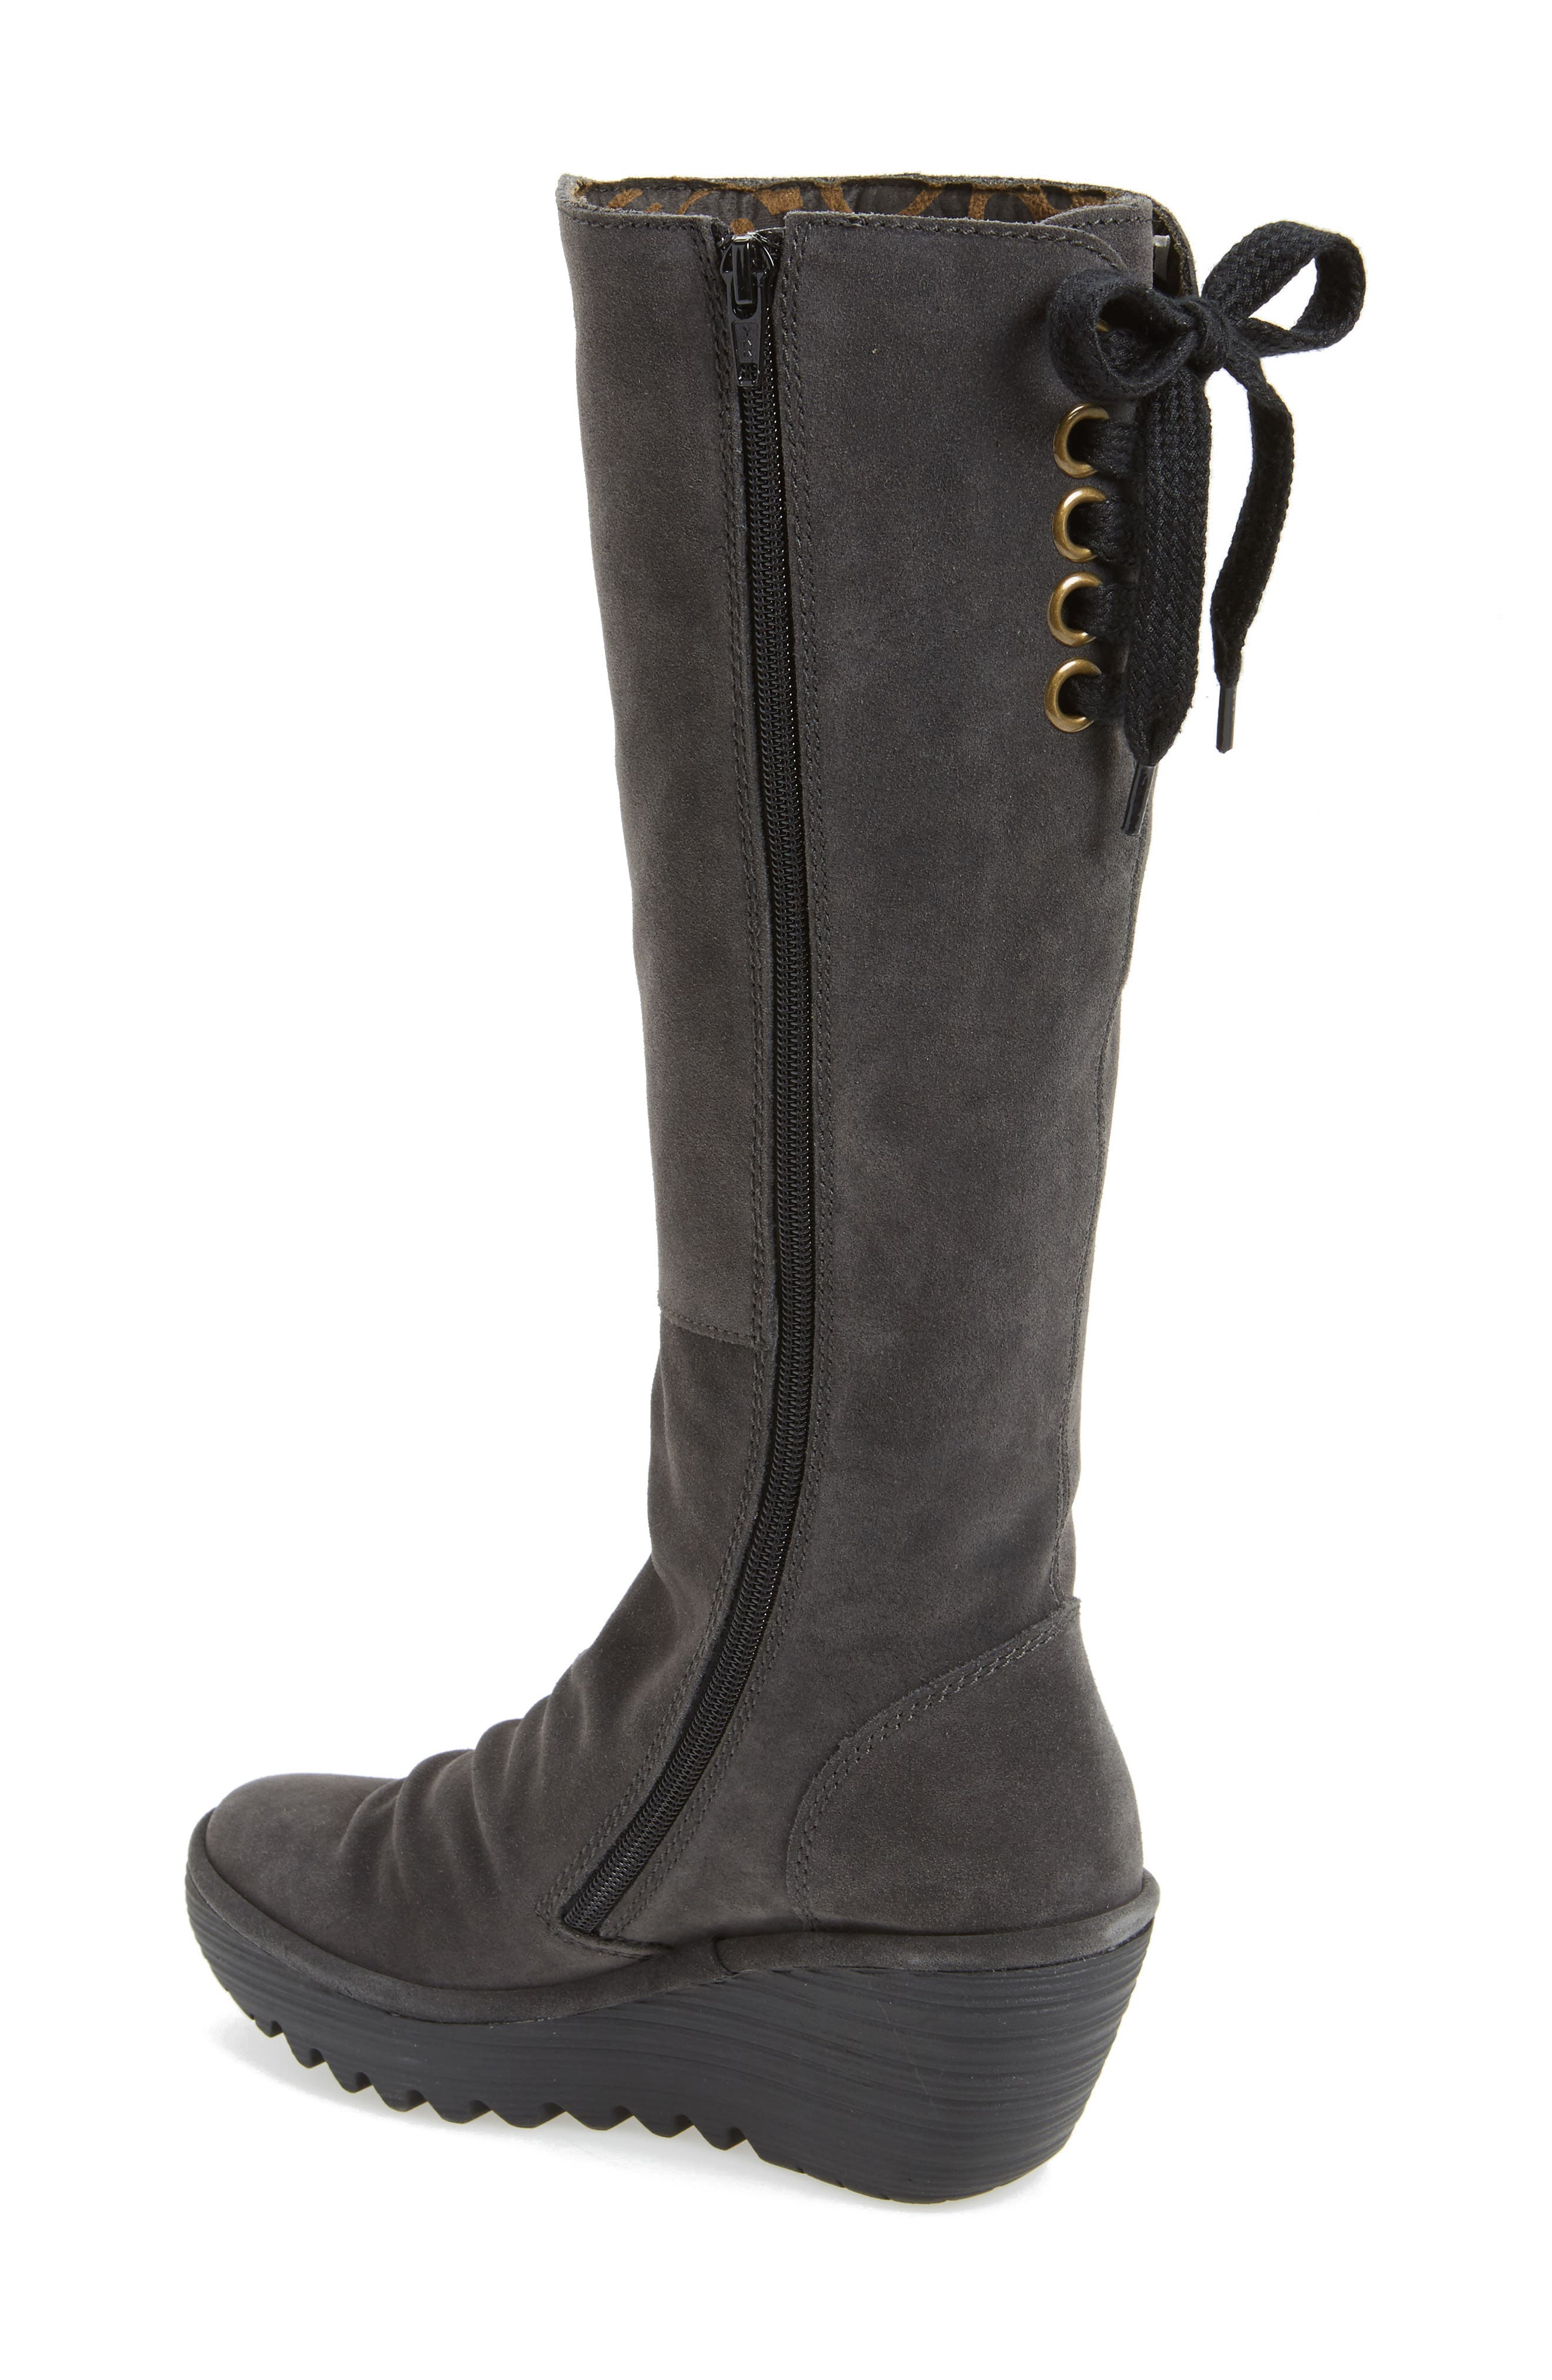 'Yust' Knee High Platform Wedge Boot,                             Alternate thumbnail 2, color,                             002